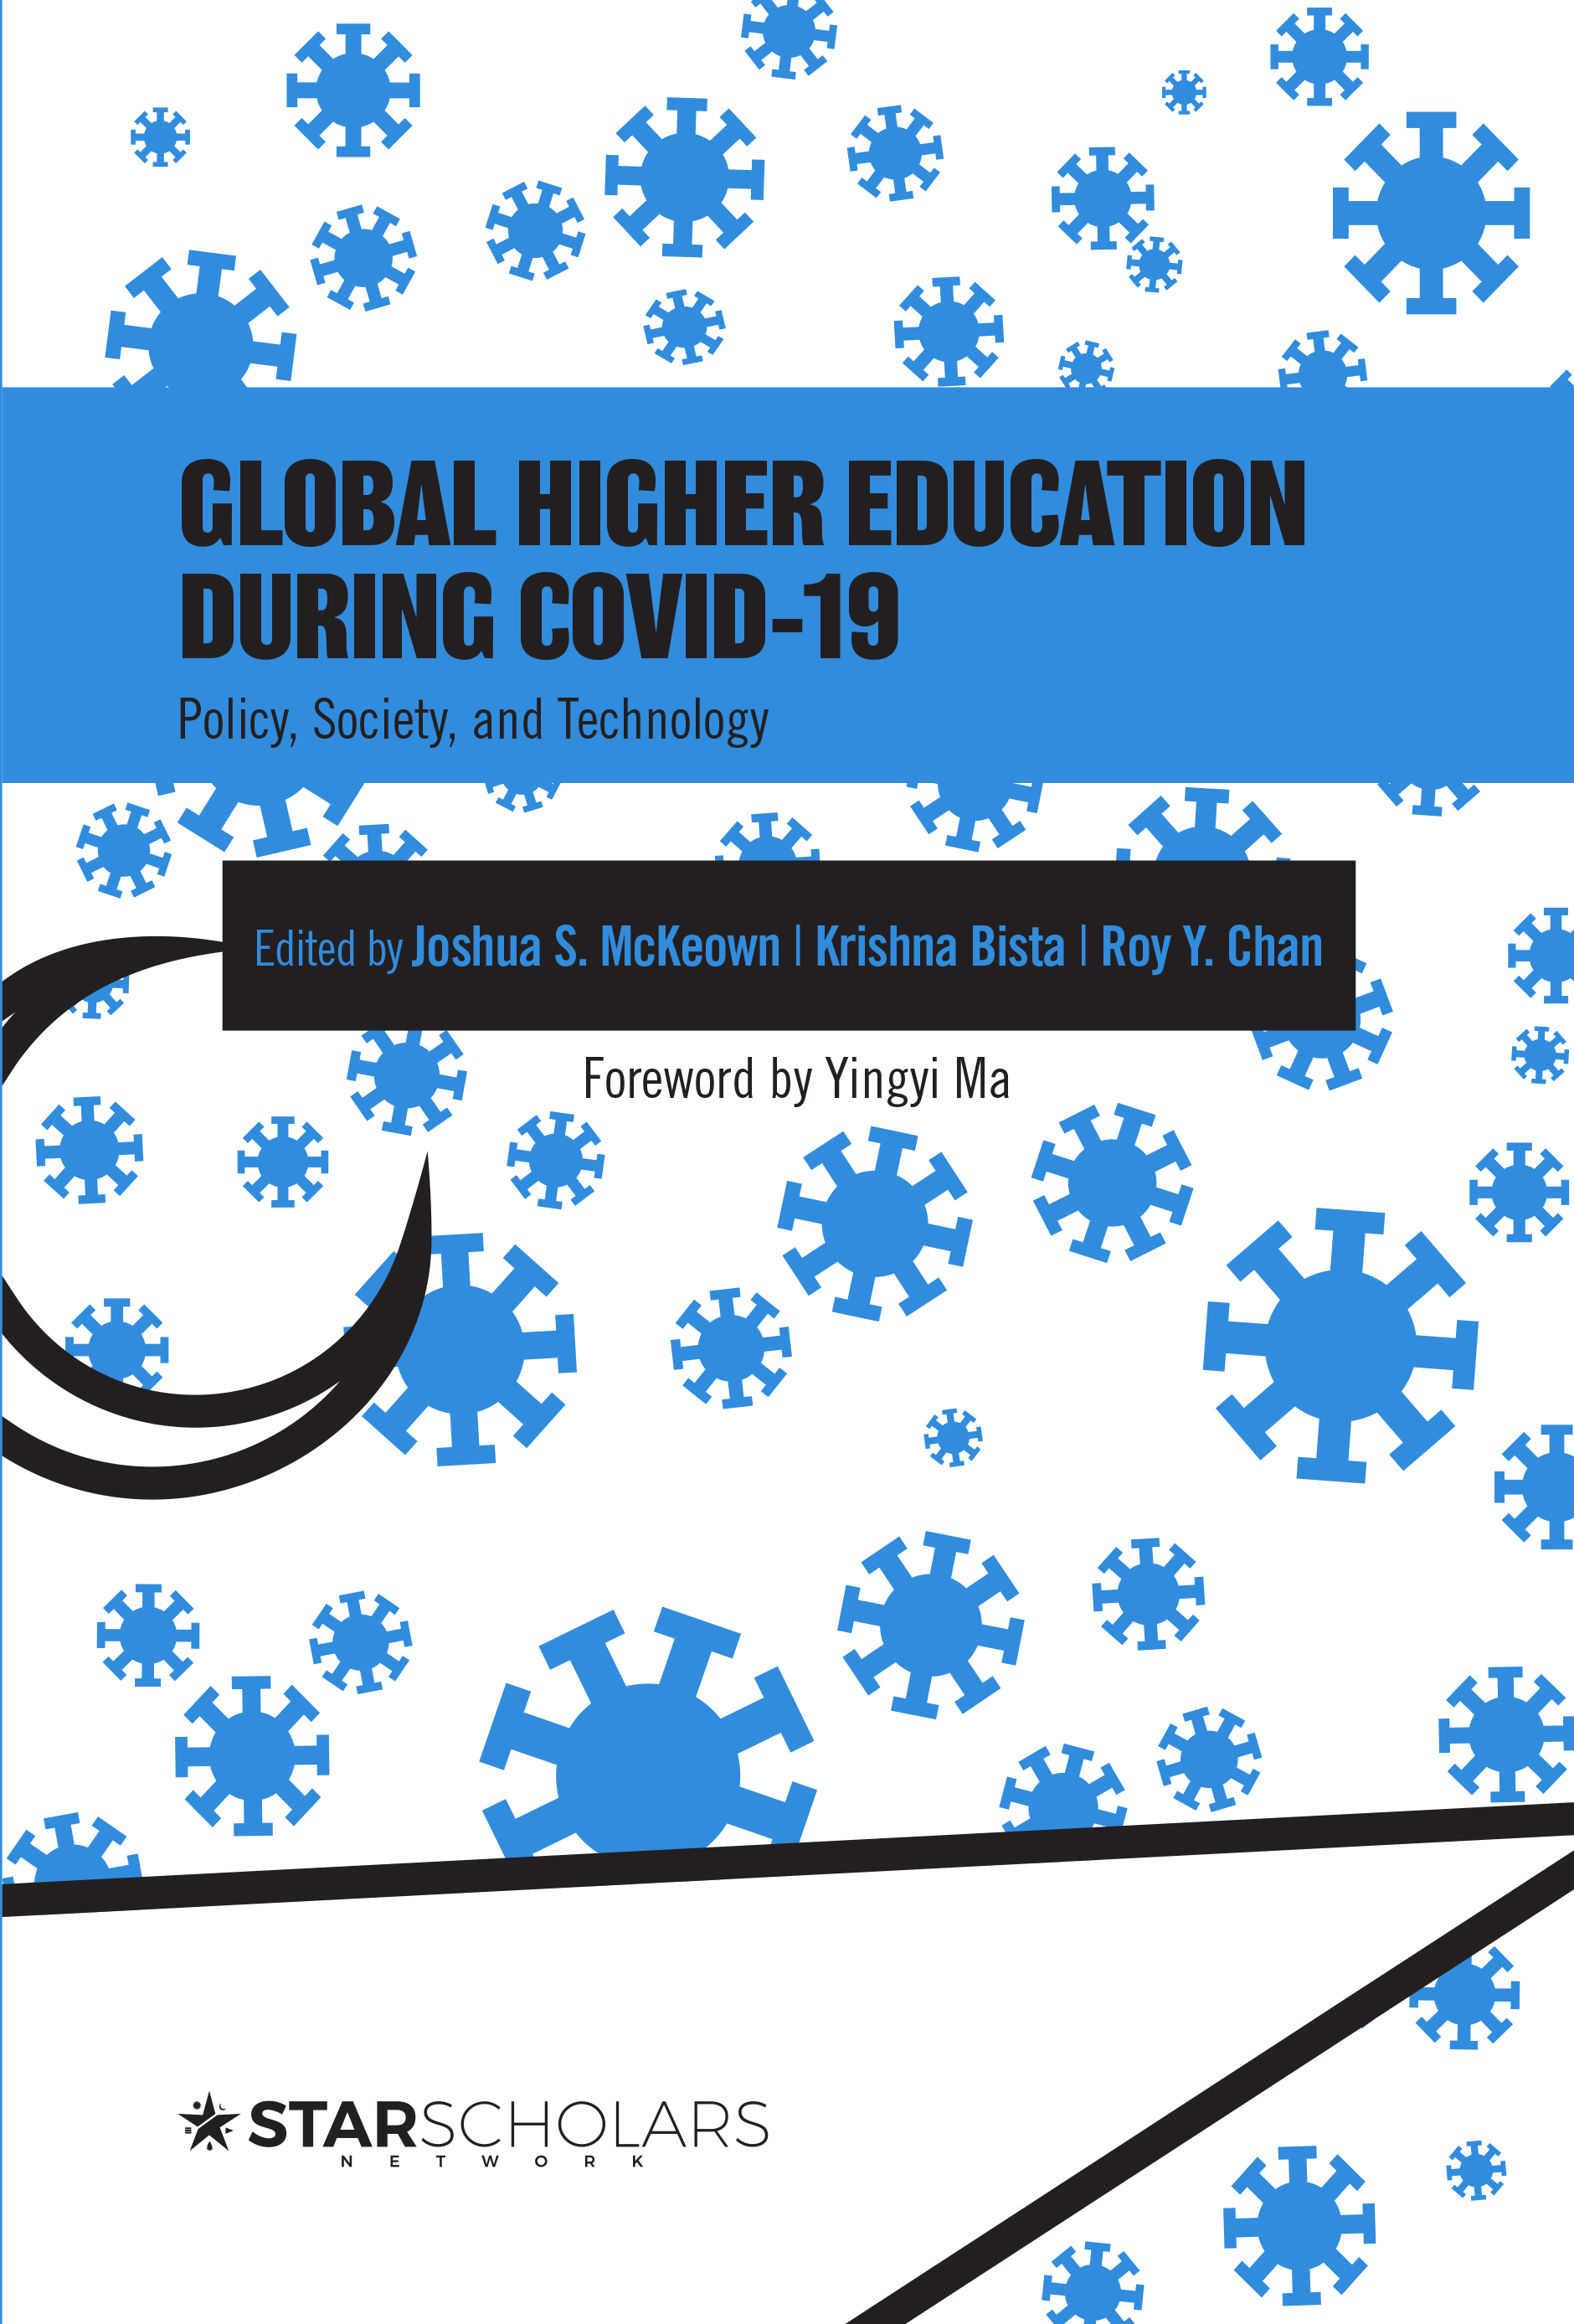 View 2022: Global Higher Education During COVID-19: Policy, Society, and Technology